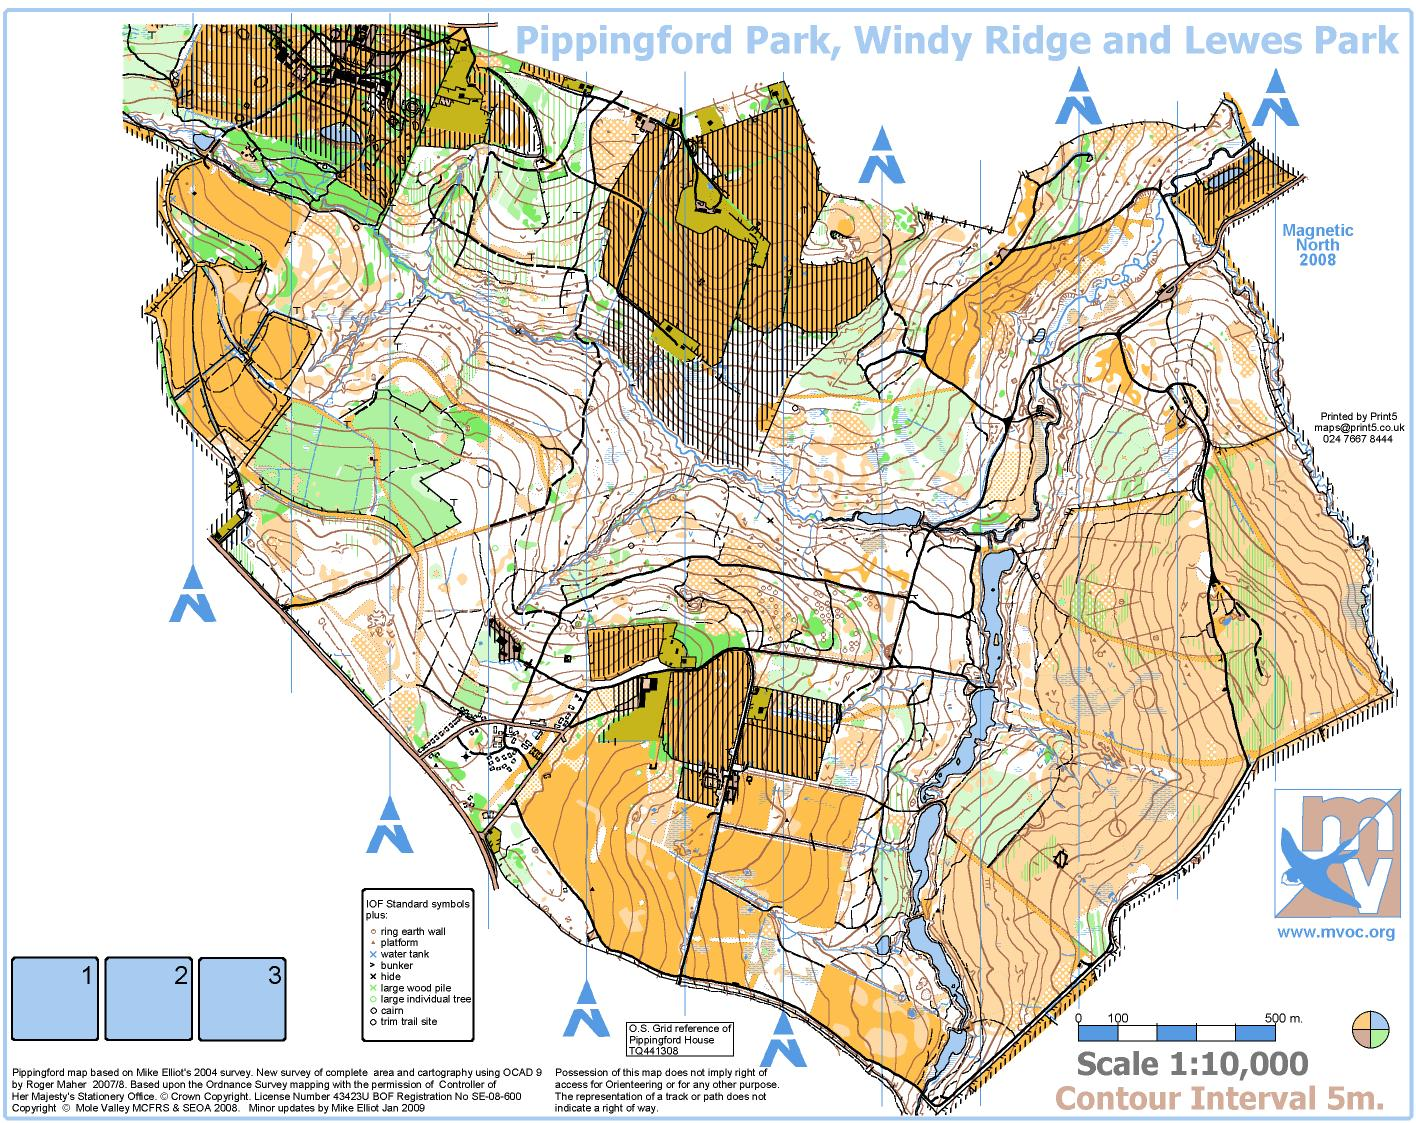 Pippingford park regional level 2 event january 18th 2009 view map jpg biocorpaavc